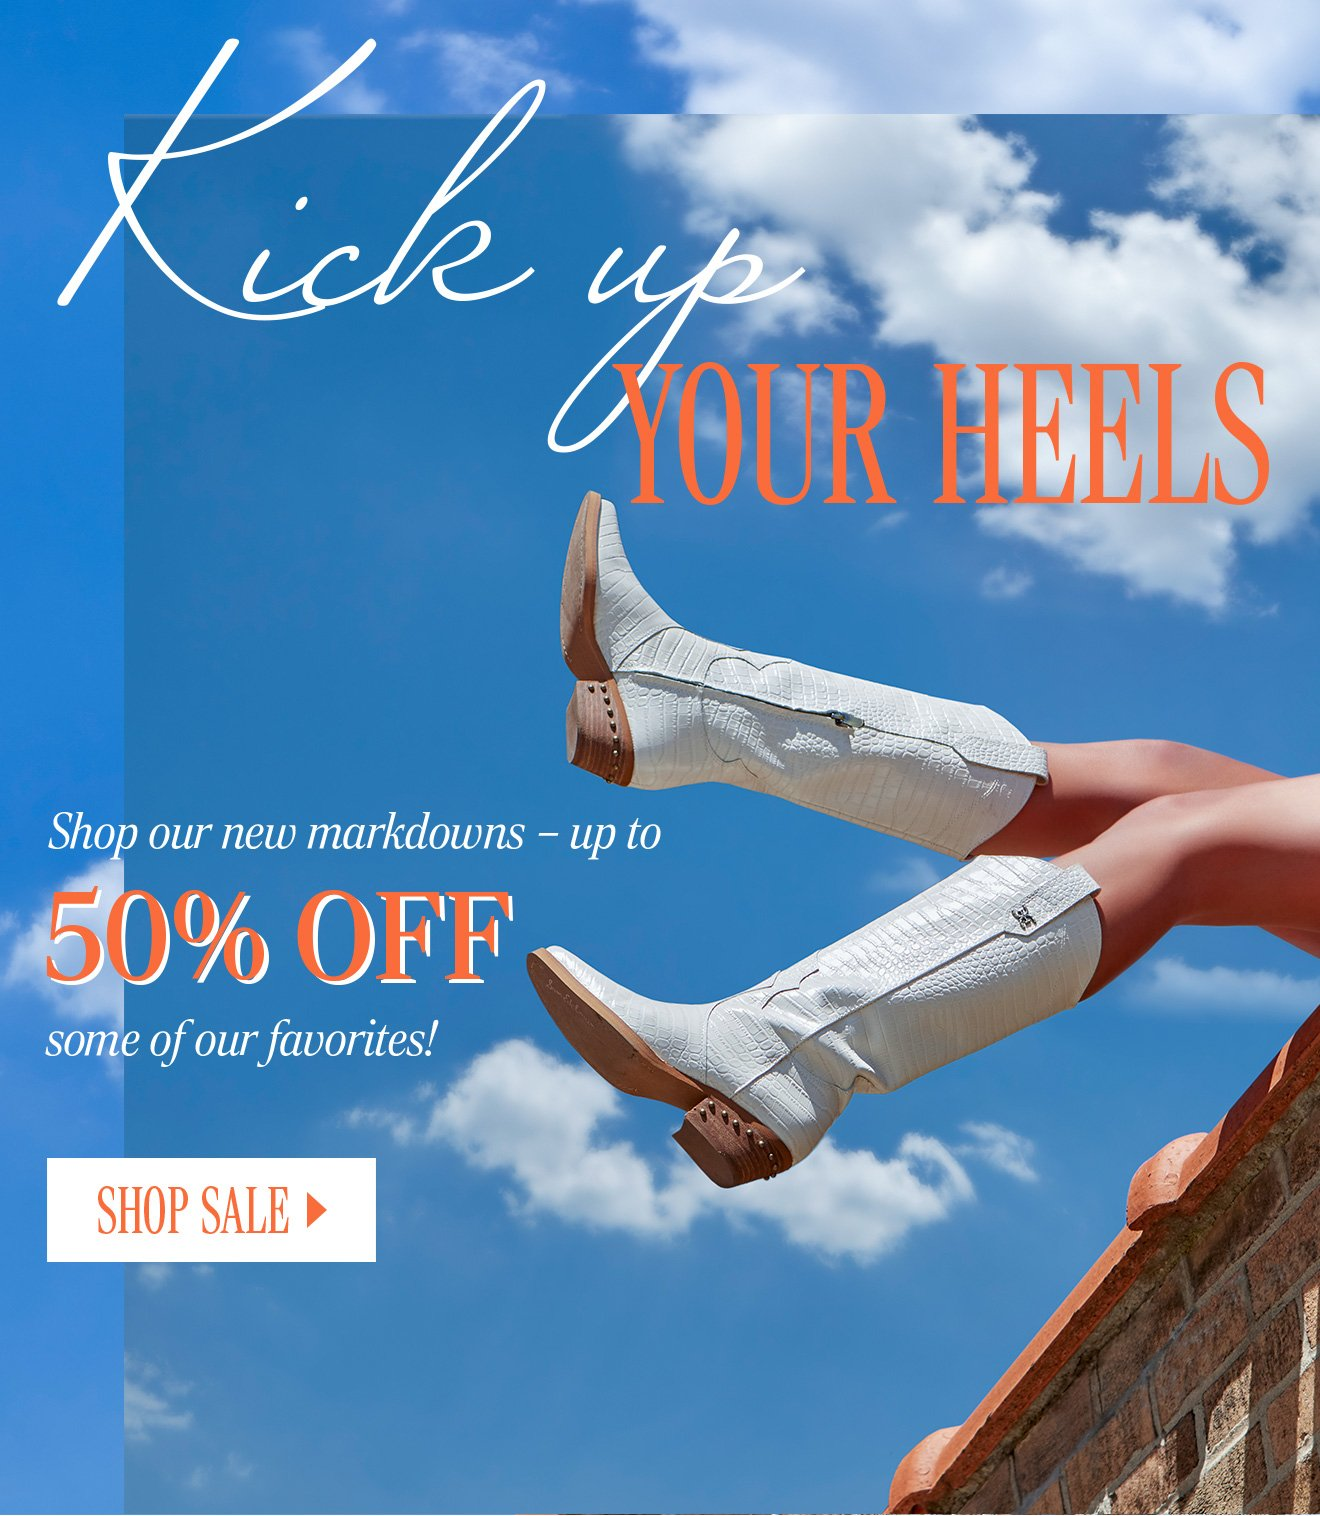 KICK UP YOUR HEELS. Shop our new markdowns - up to 50% OFF some of our favorites! SHOP SALE